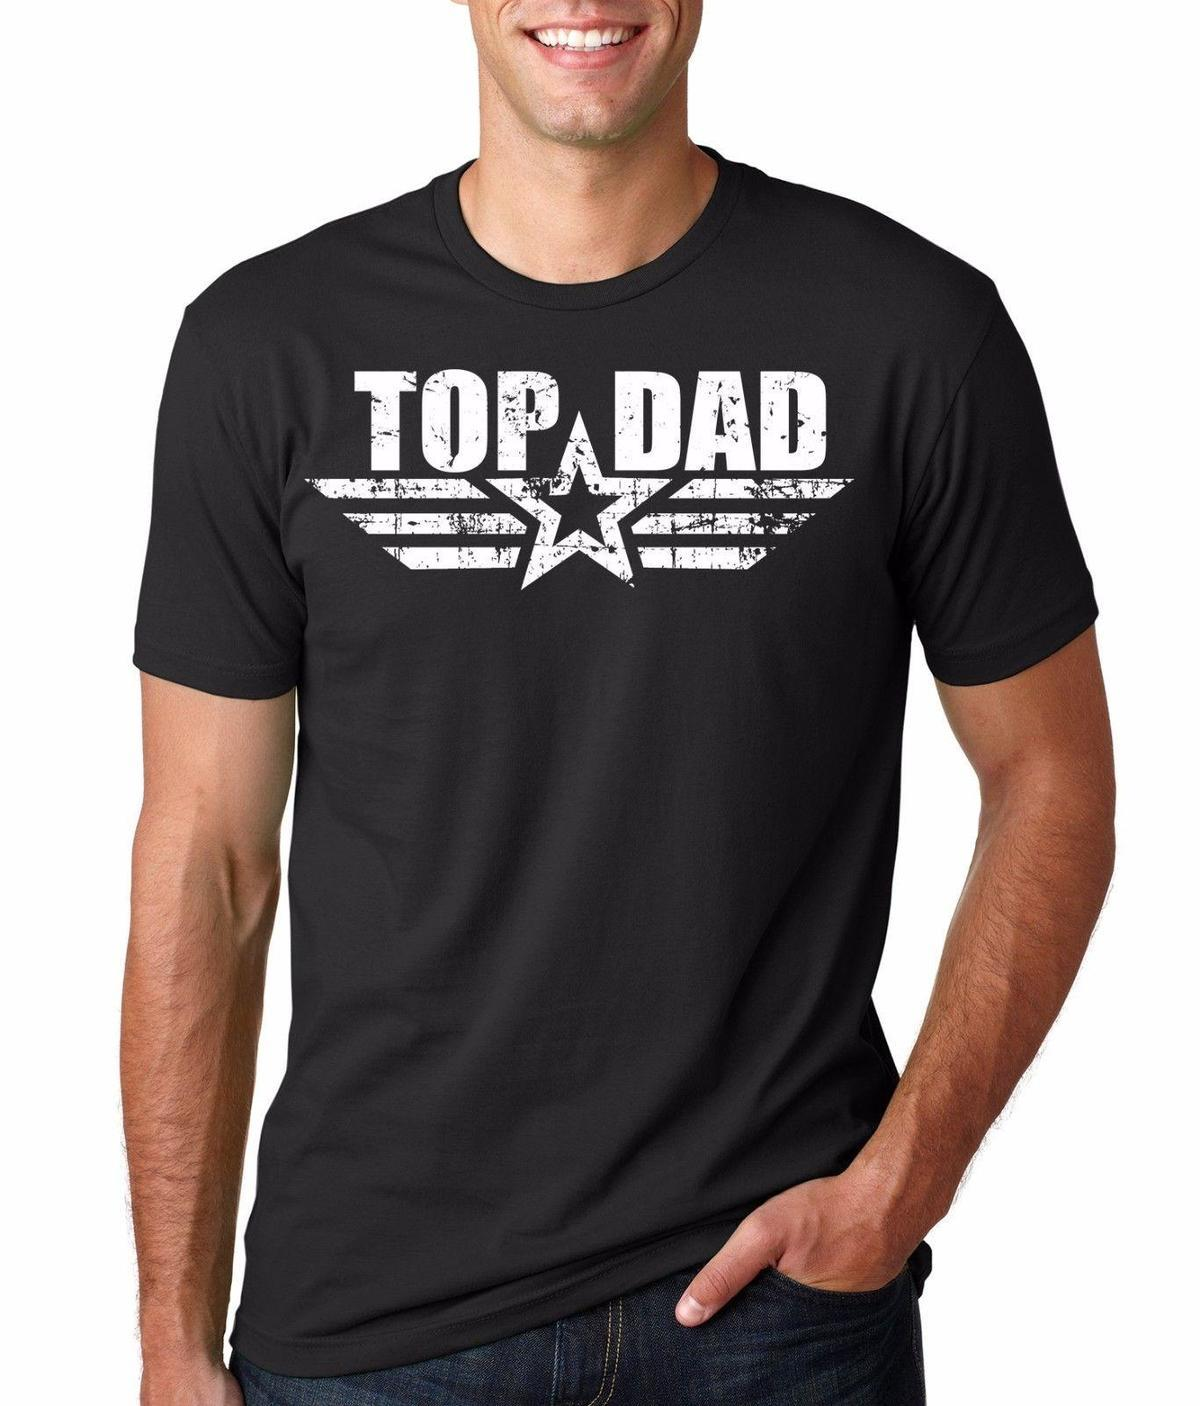 TOP DAD Gift For Father Daddy Birthday Best Dad T Shirt Online Shopping Tee Shirts Crazy Men From Liguo0047 1187